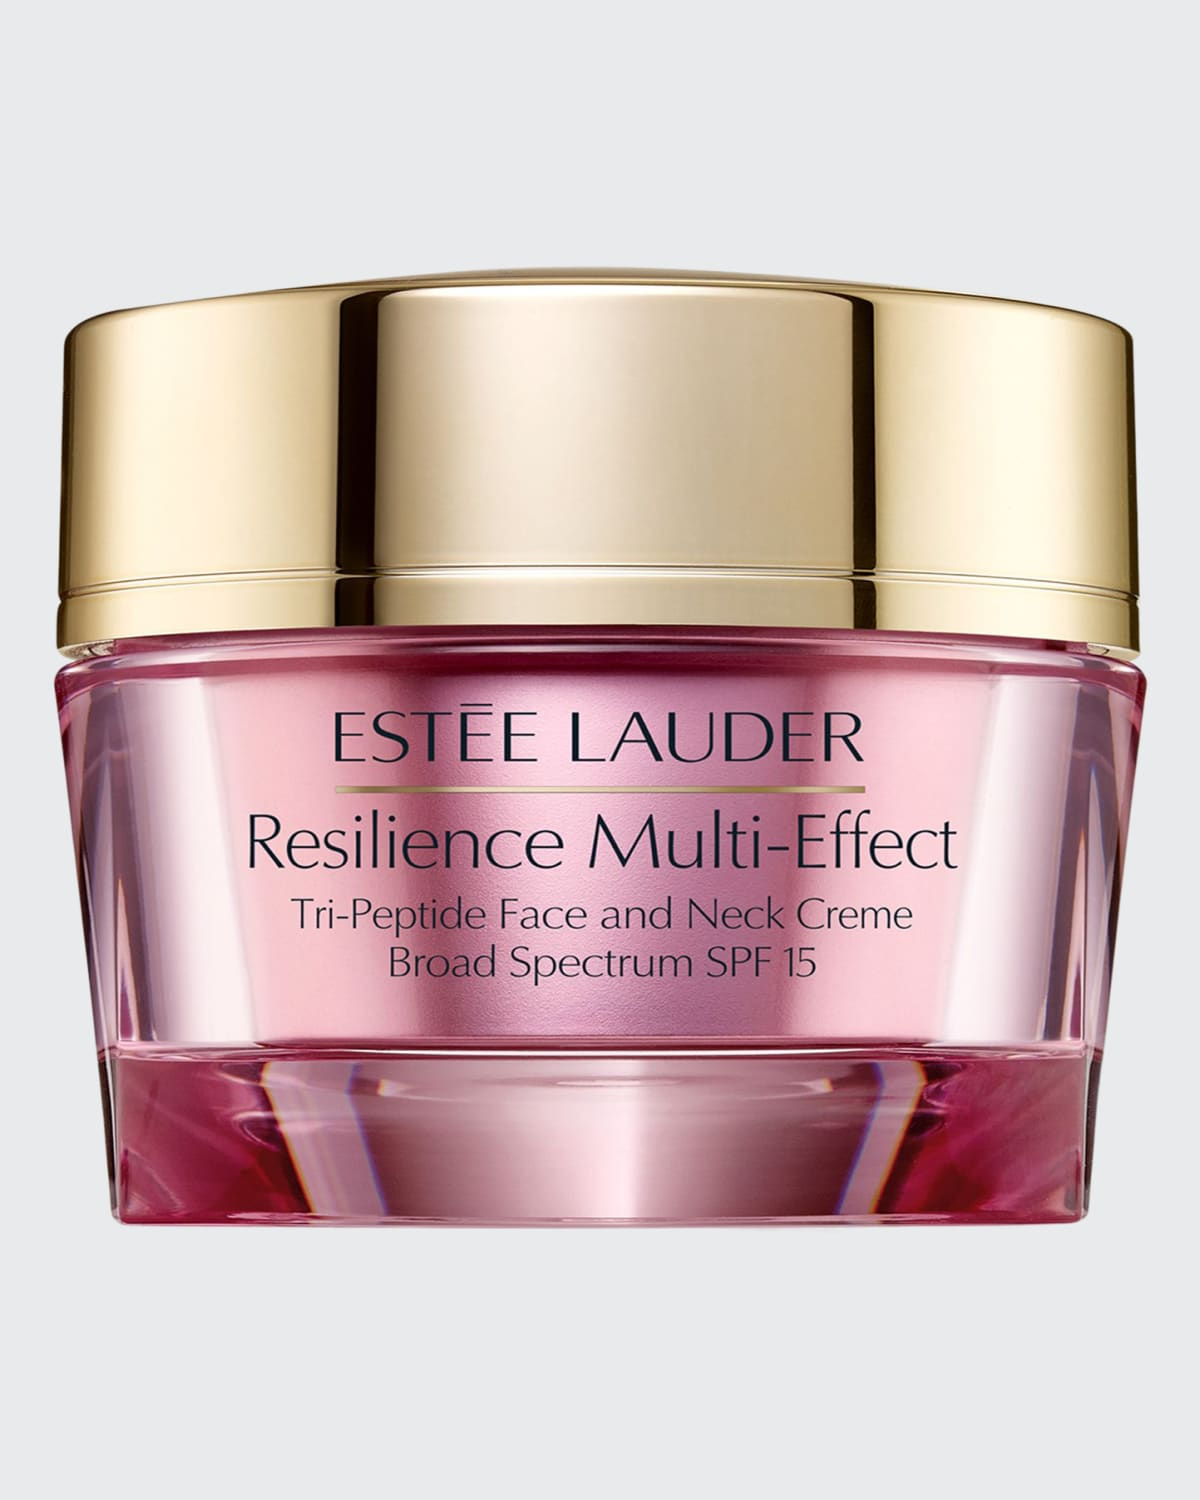 Resilience Multi-Effect Tripeptide Face and Neck Creme SPF 15